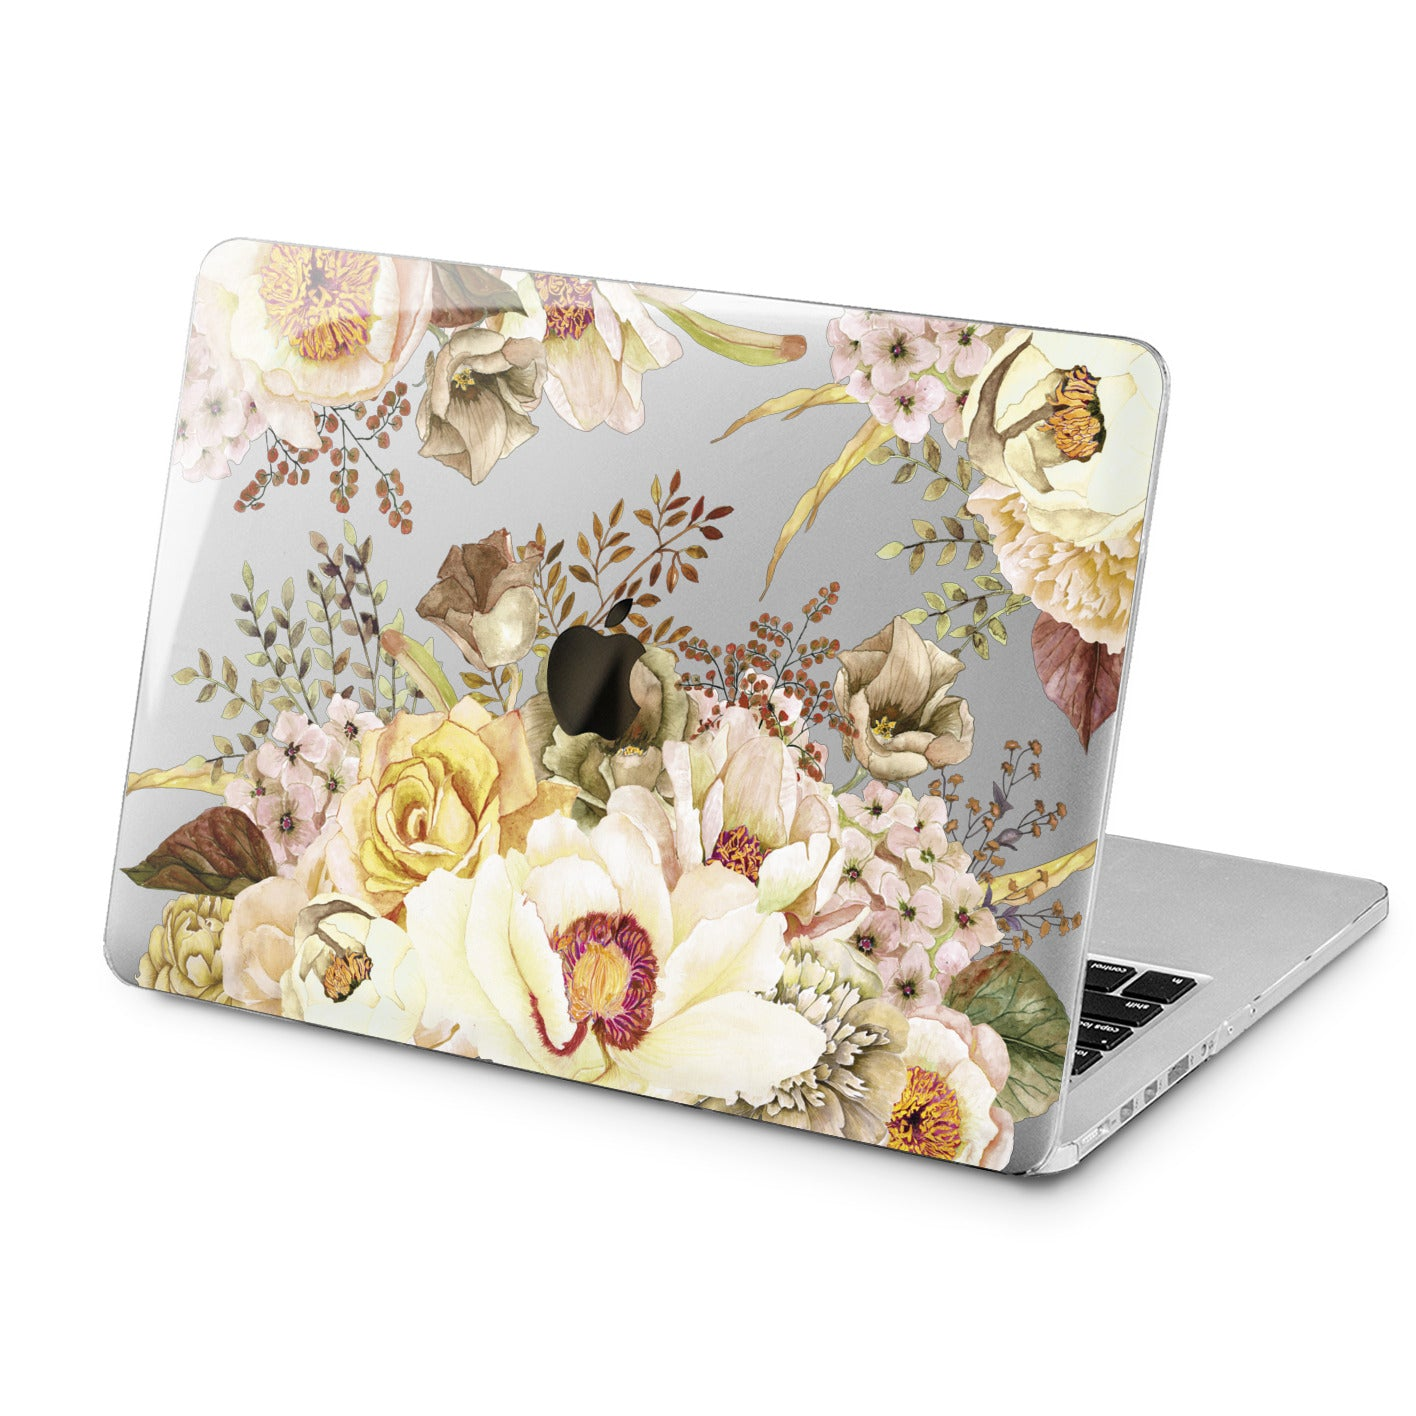 Lex Altern Lex Altern White Flowers Pattern Case for your Laptop Apple Macbook.